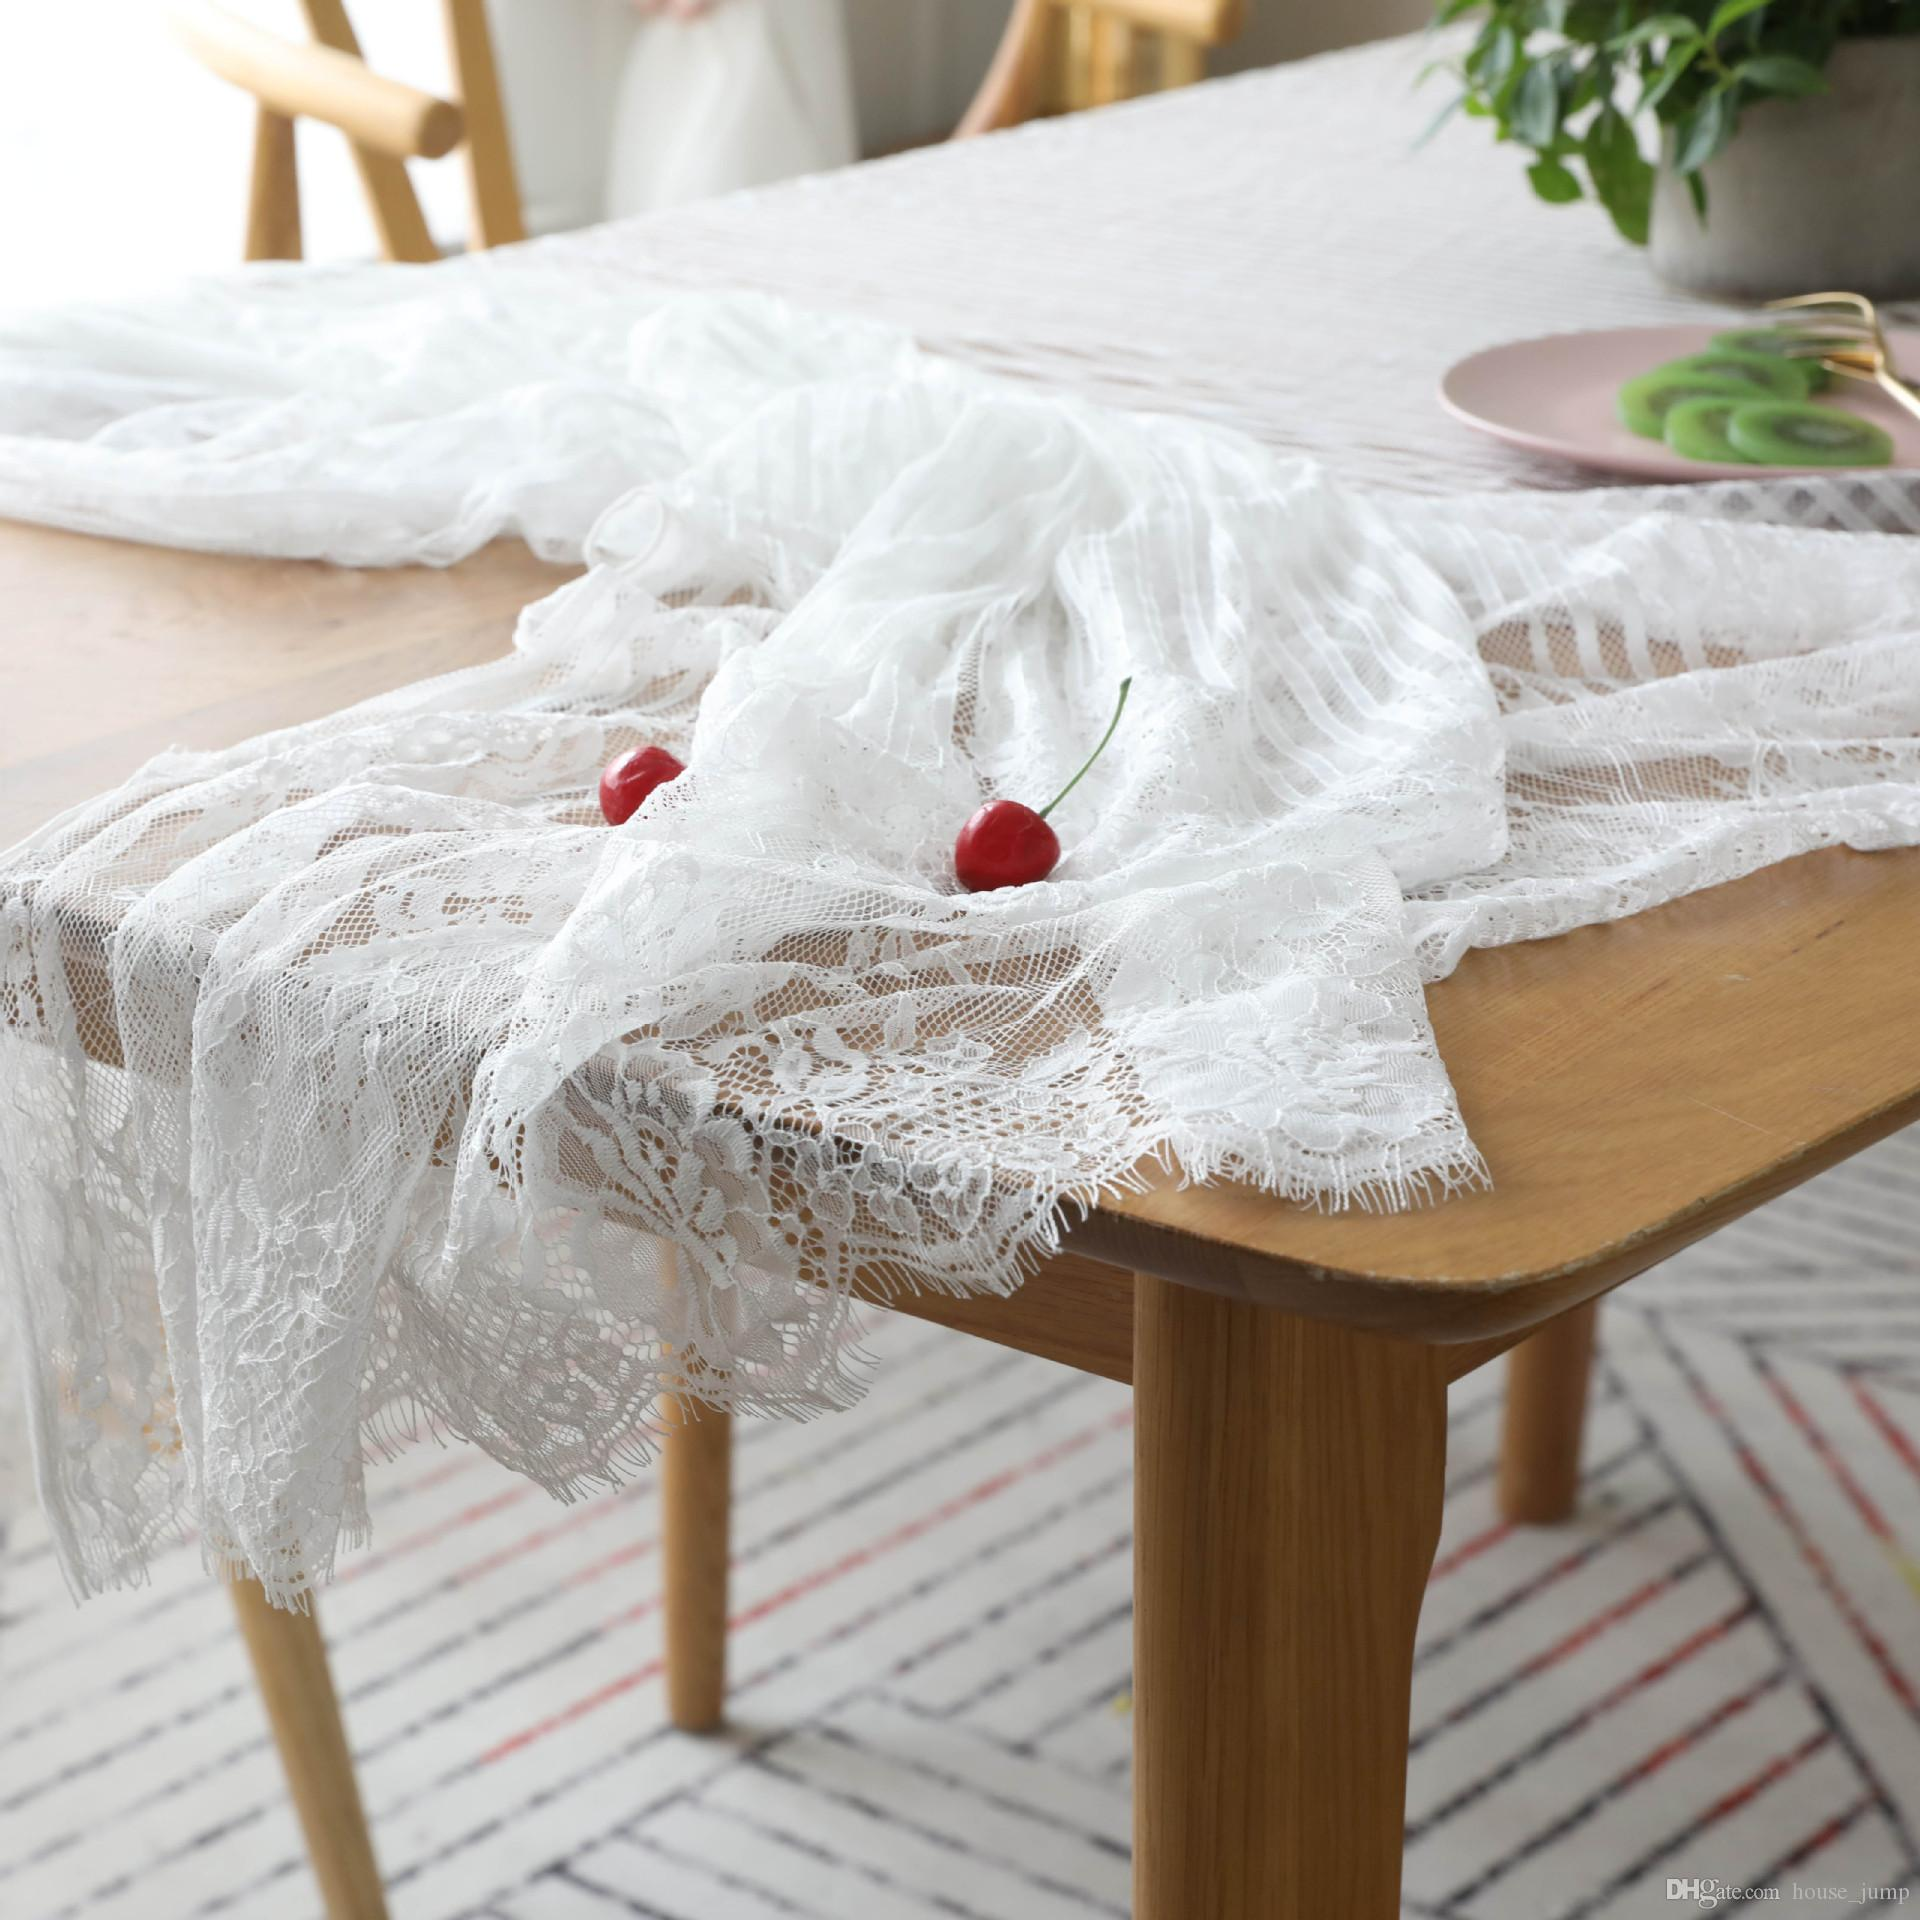 Ins Nordic Lace Tablecloth Tea Table Eyelash Art Cafe Table Cloth White  Flower Lace Stripe Bar Table Cloth